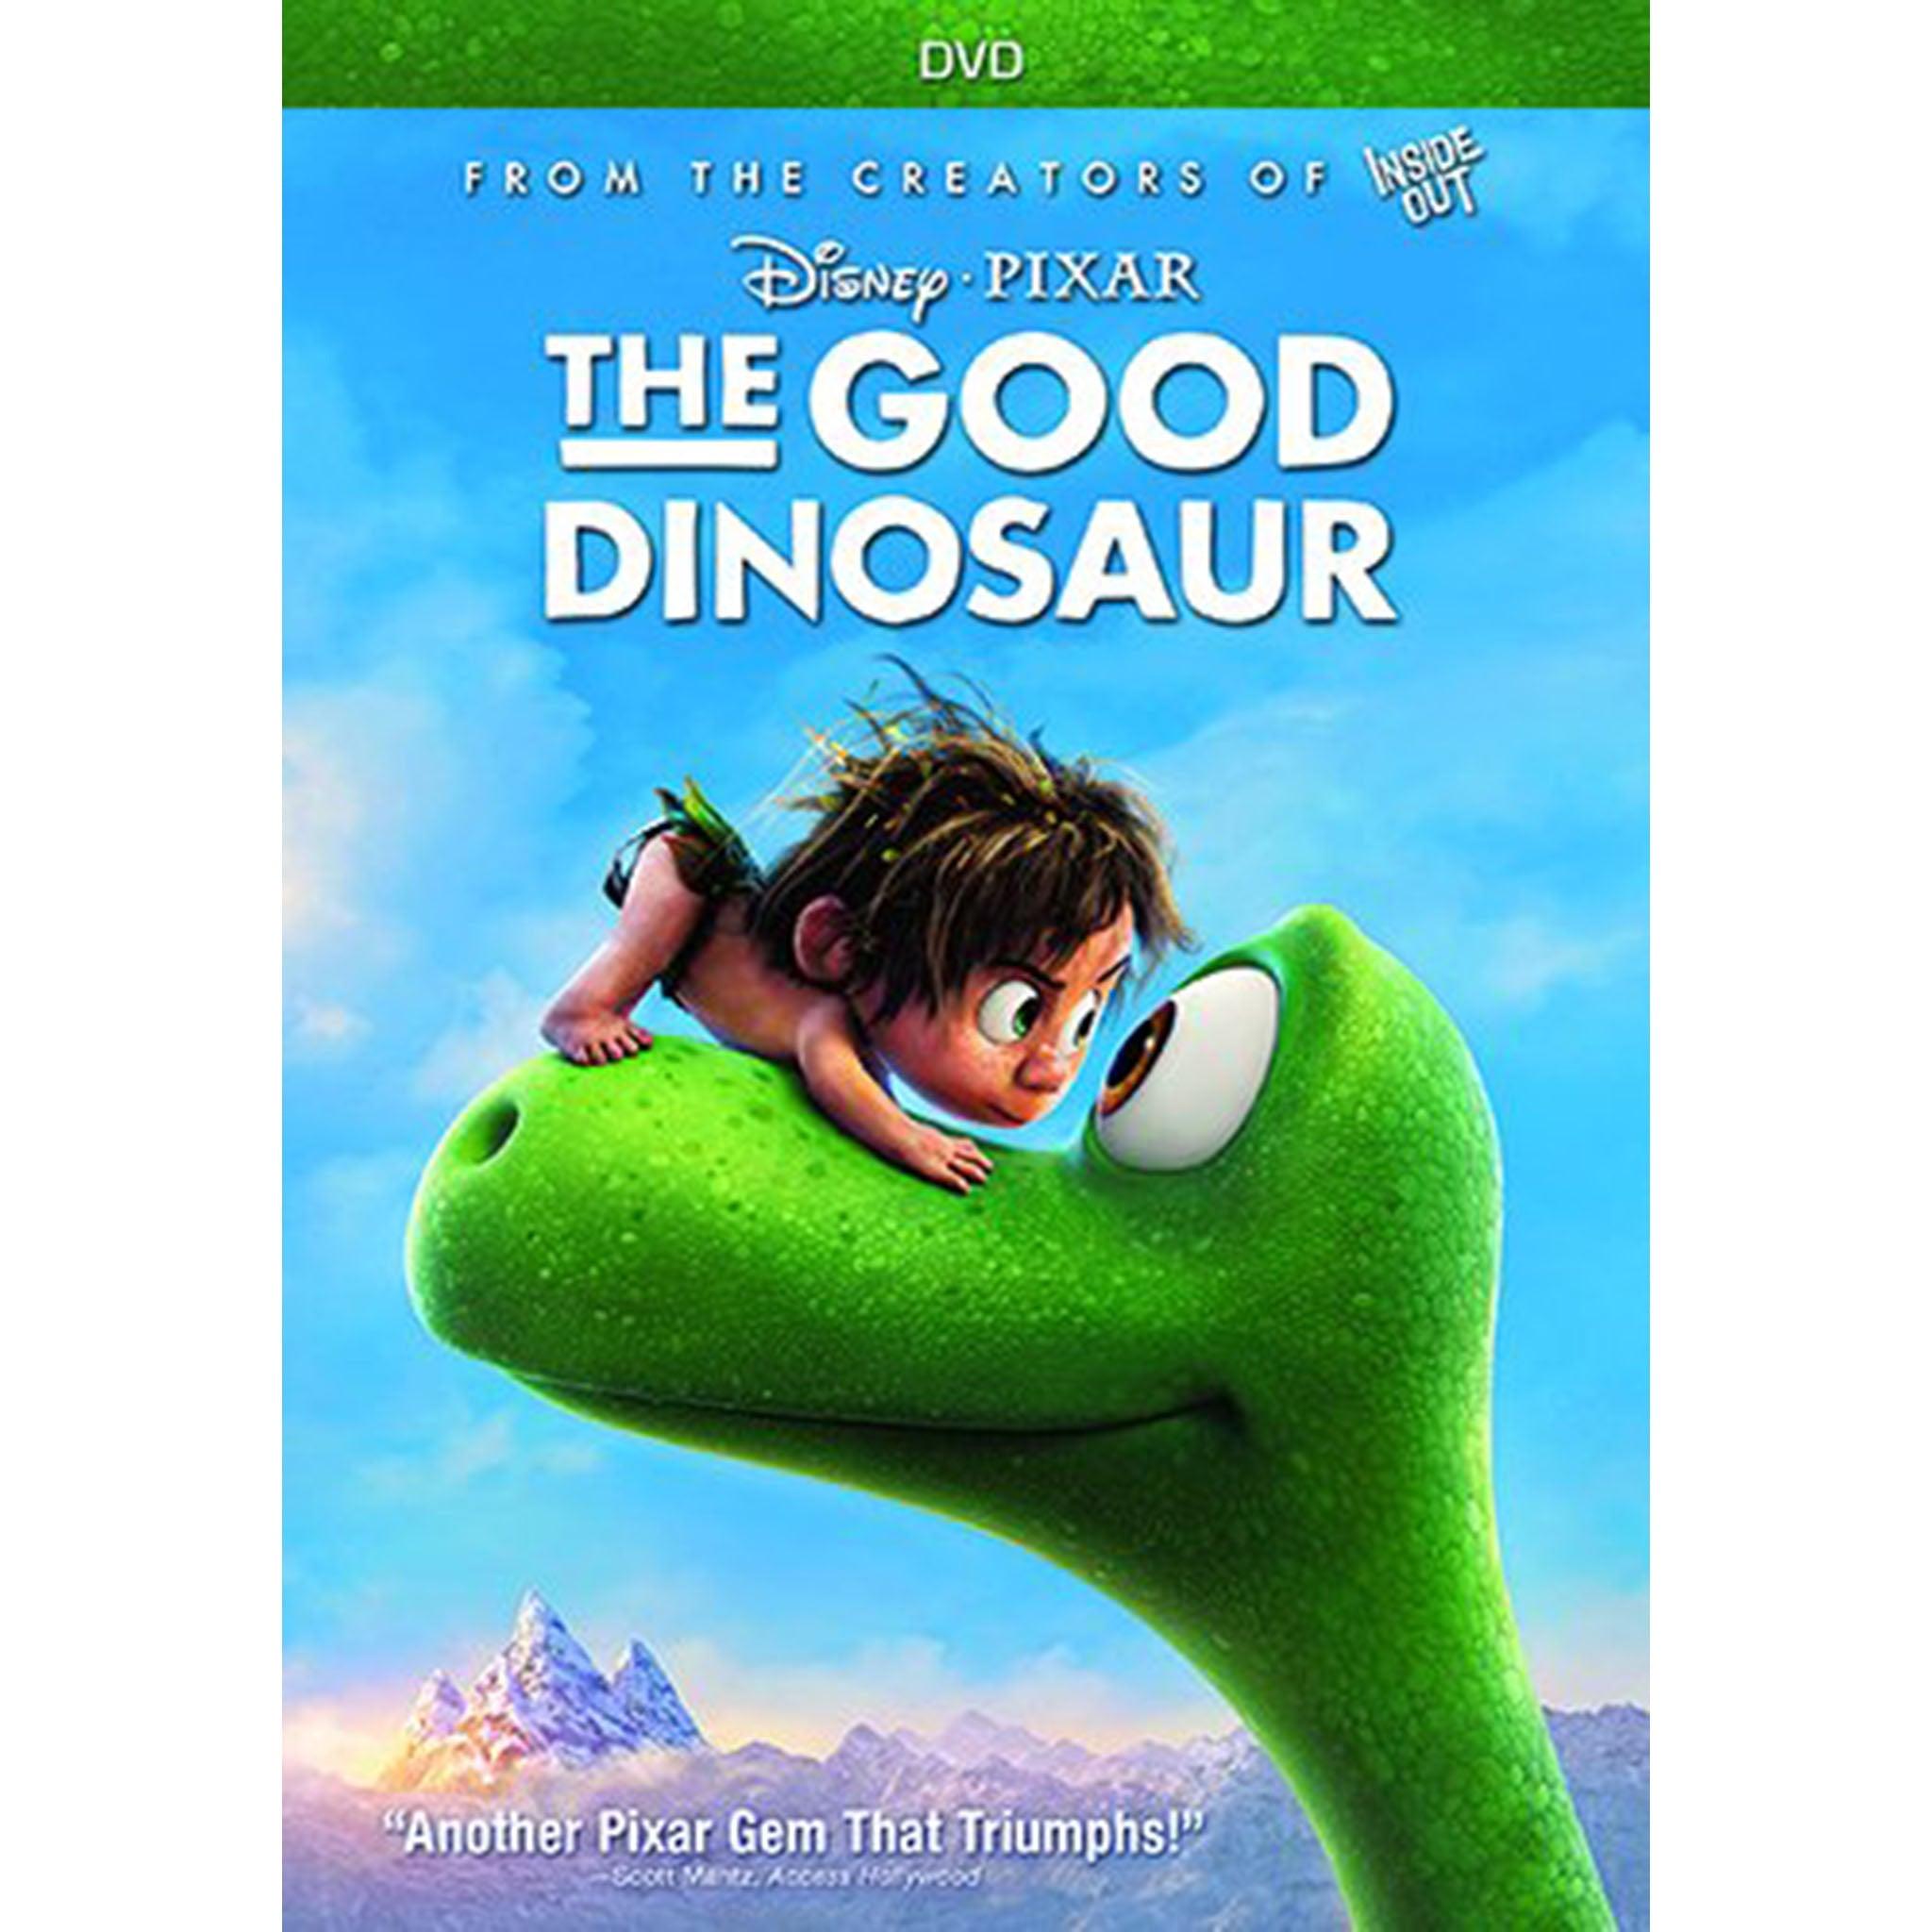 The Good Dinosaur (DVD) - DVDsHQ